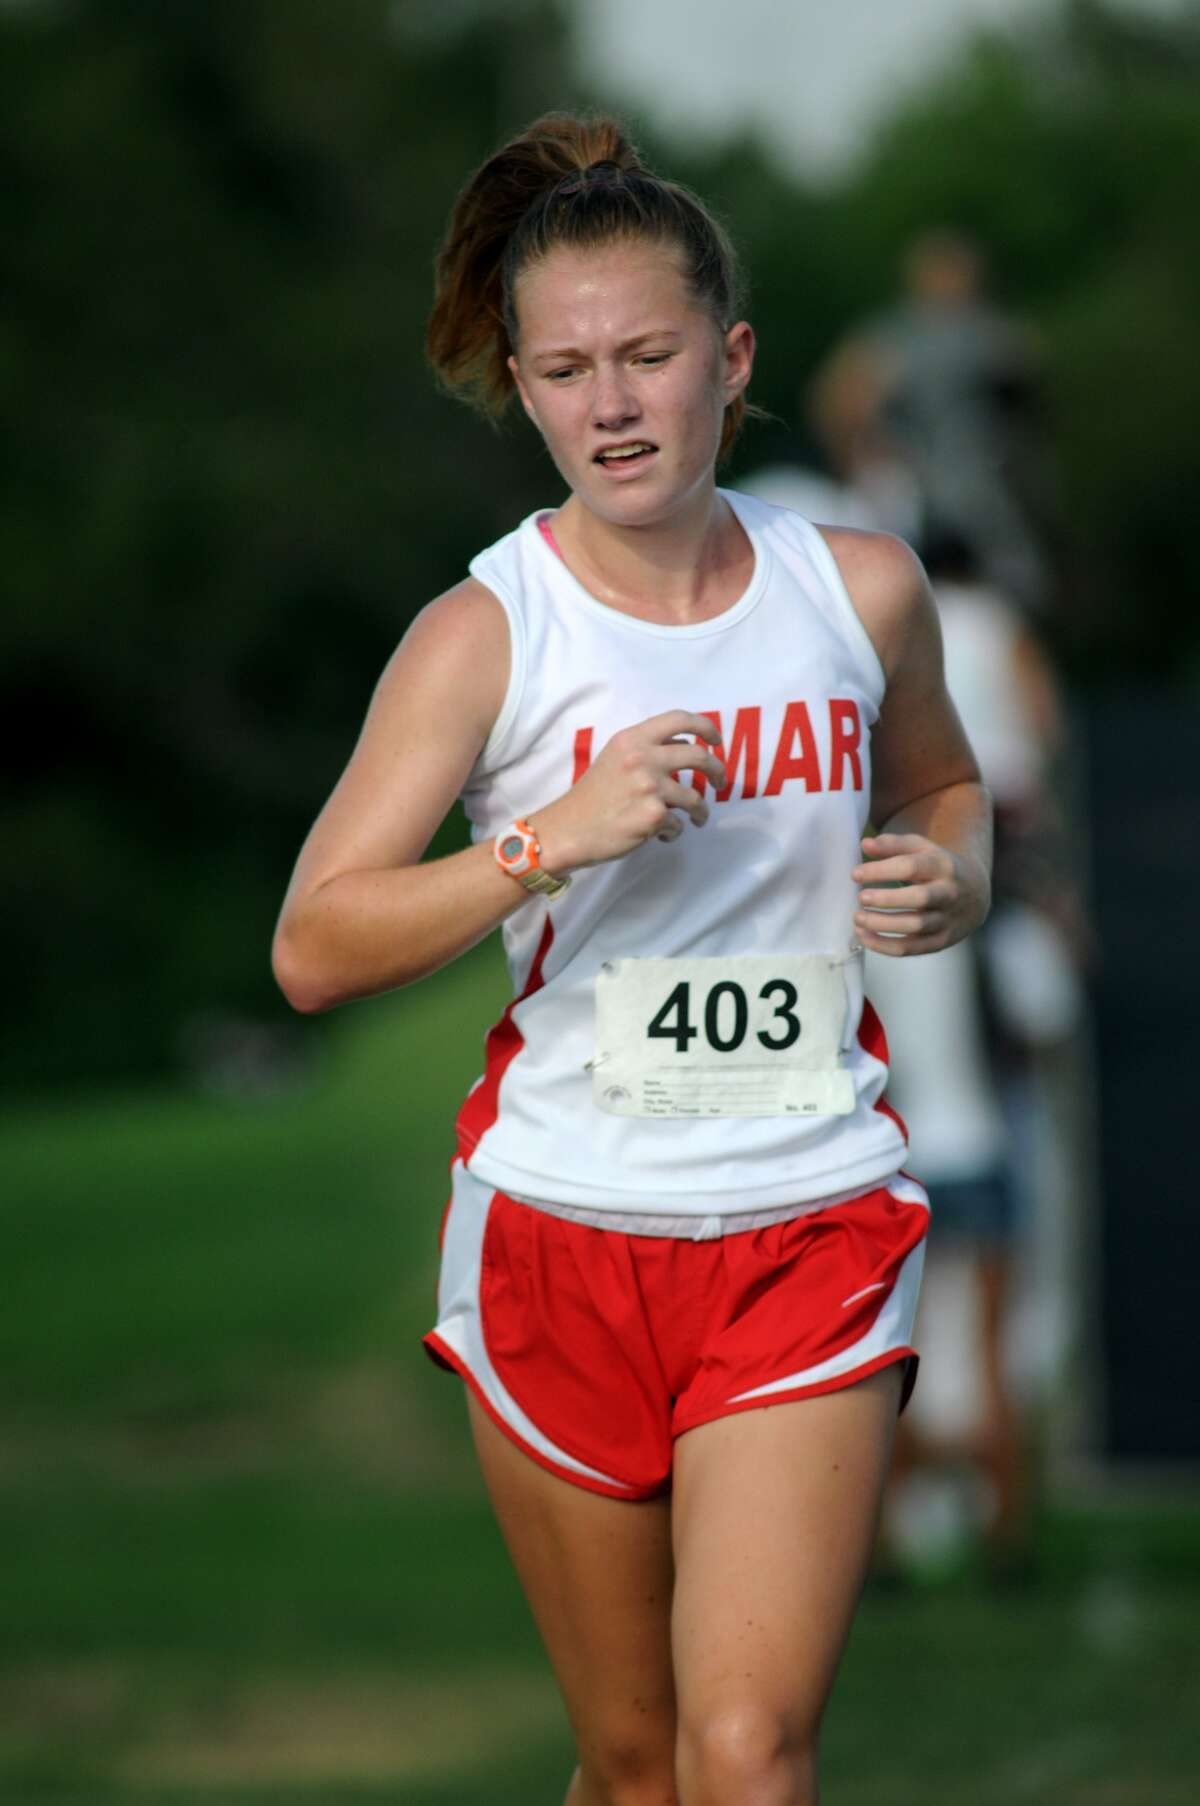 Houston Lamar's Jordan Reeves competes in the Girls Varsity Race at the Houston Christian Invitational Cross Country meet at Houston Christian High School.